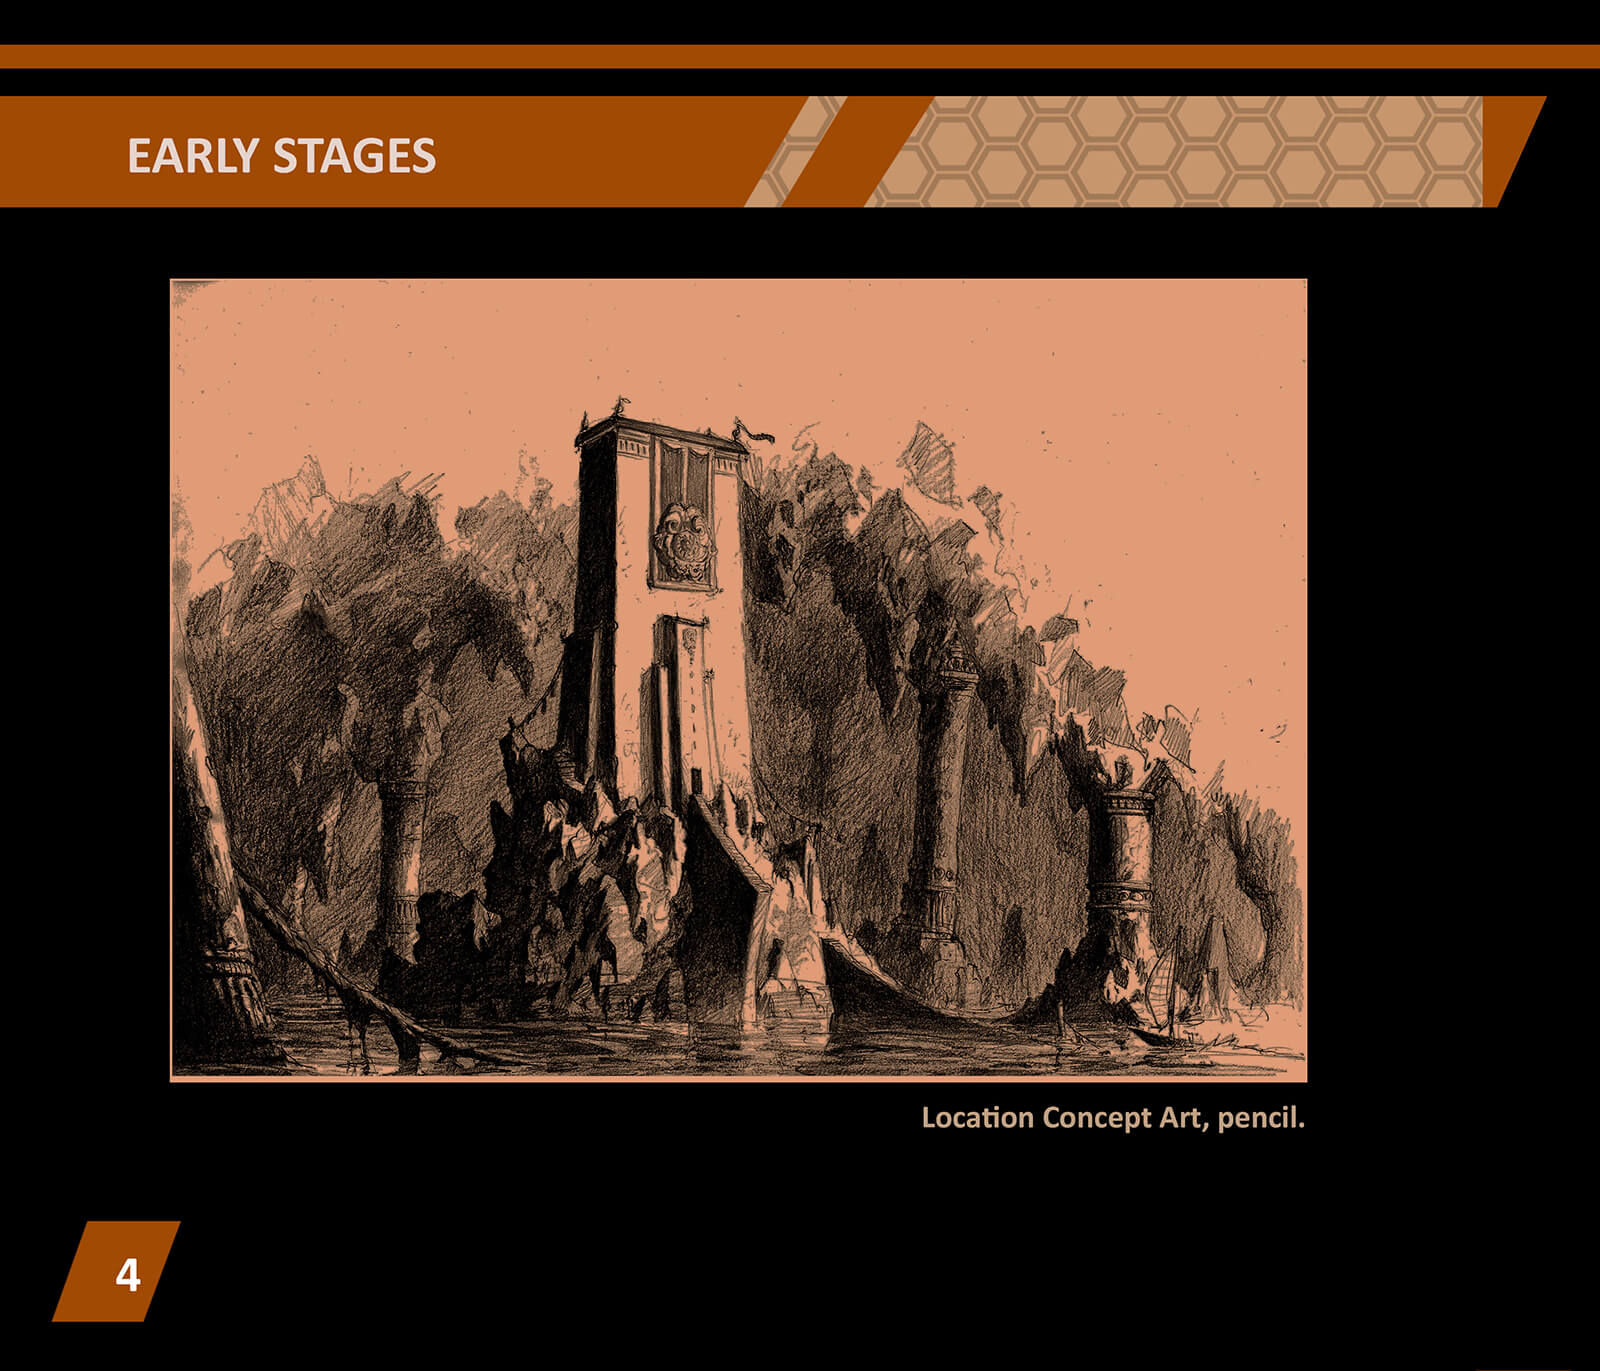 Location concept art, a black-and-white drawing of a boxy white tower erected on a small rocky outcropping in a cavern